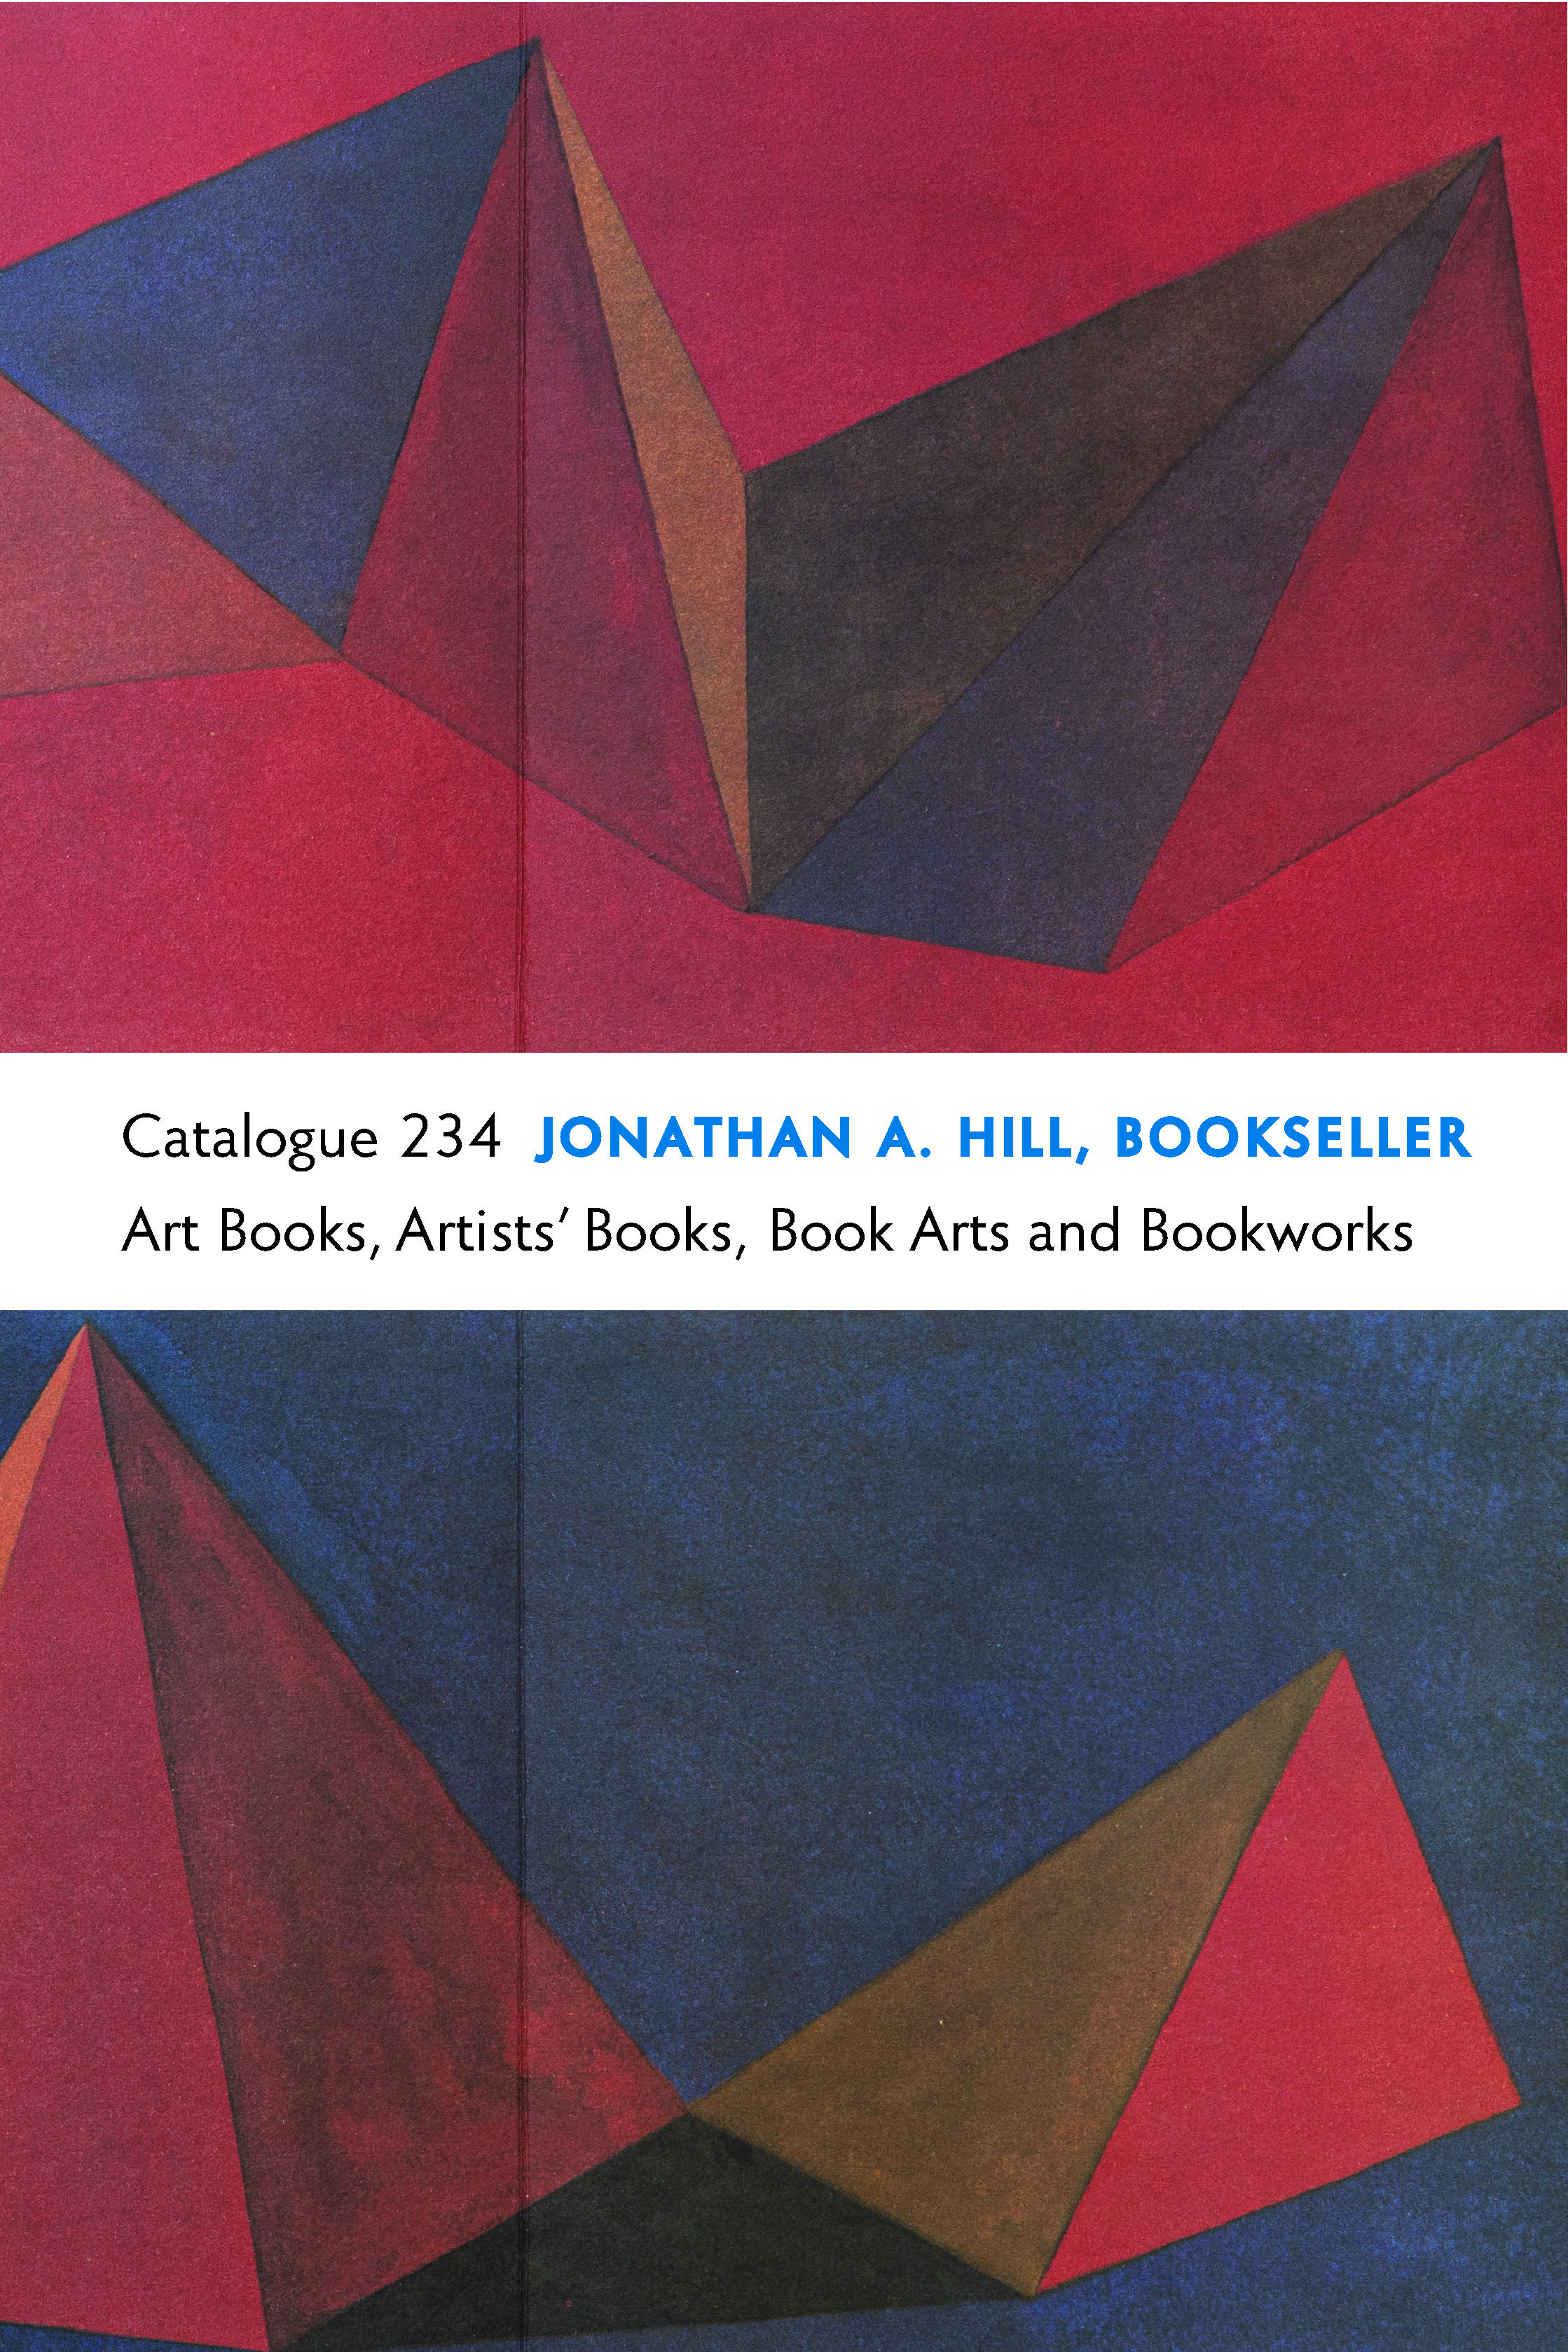 Catalogue 234